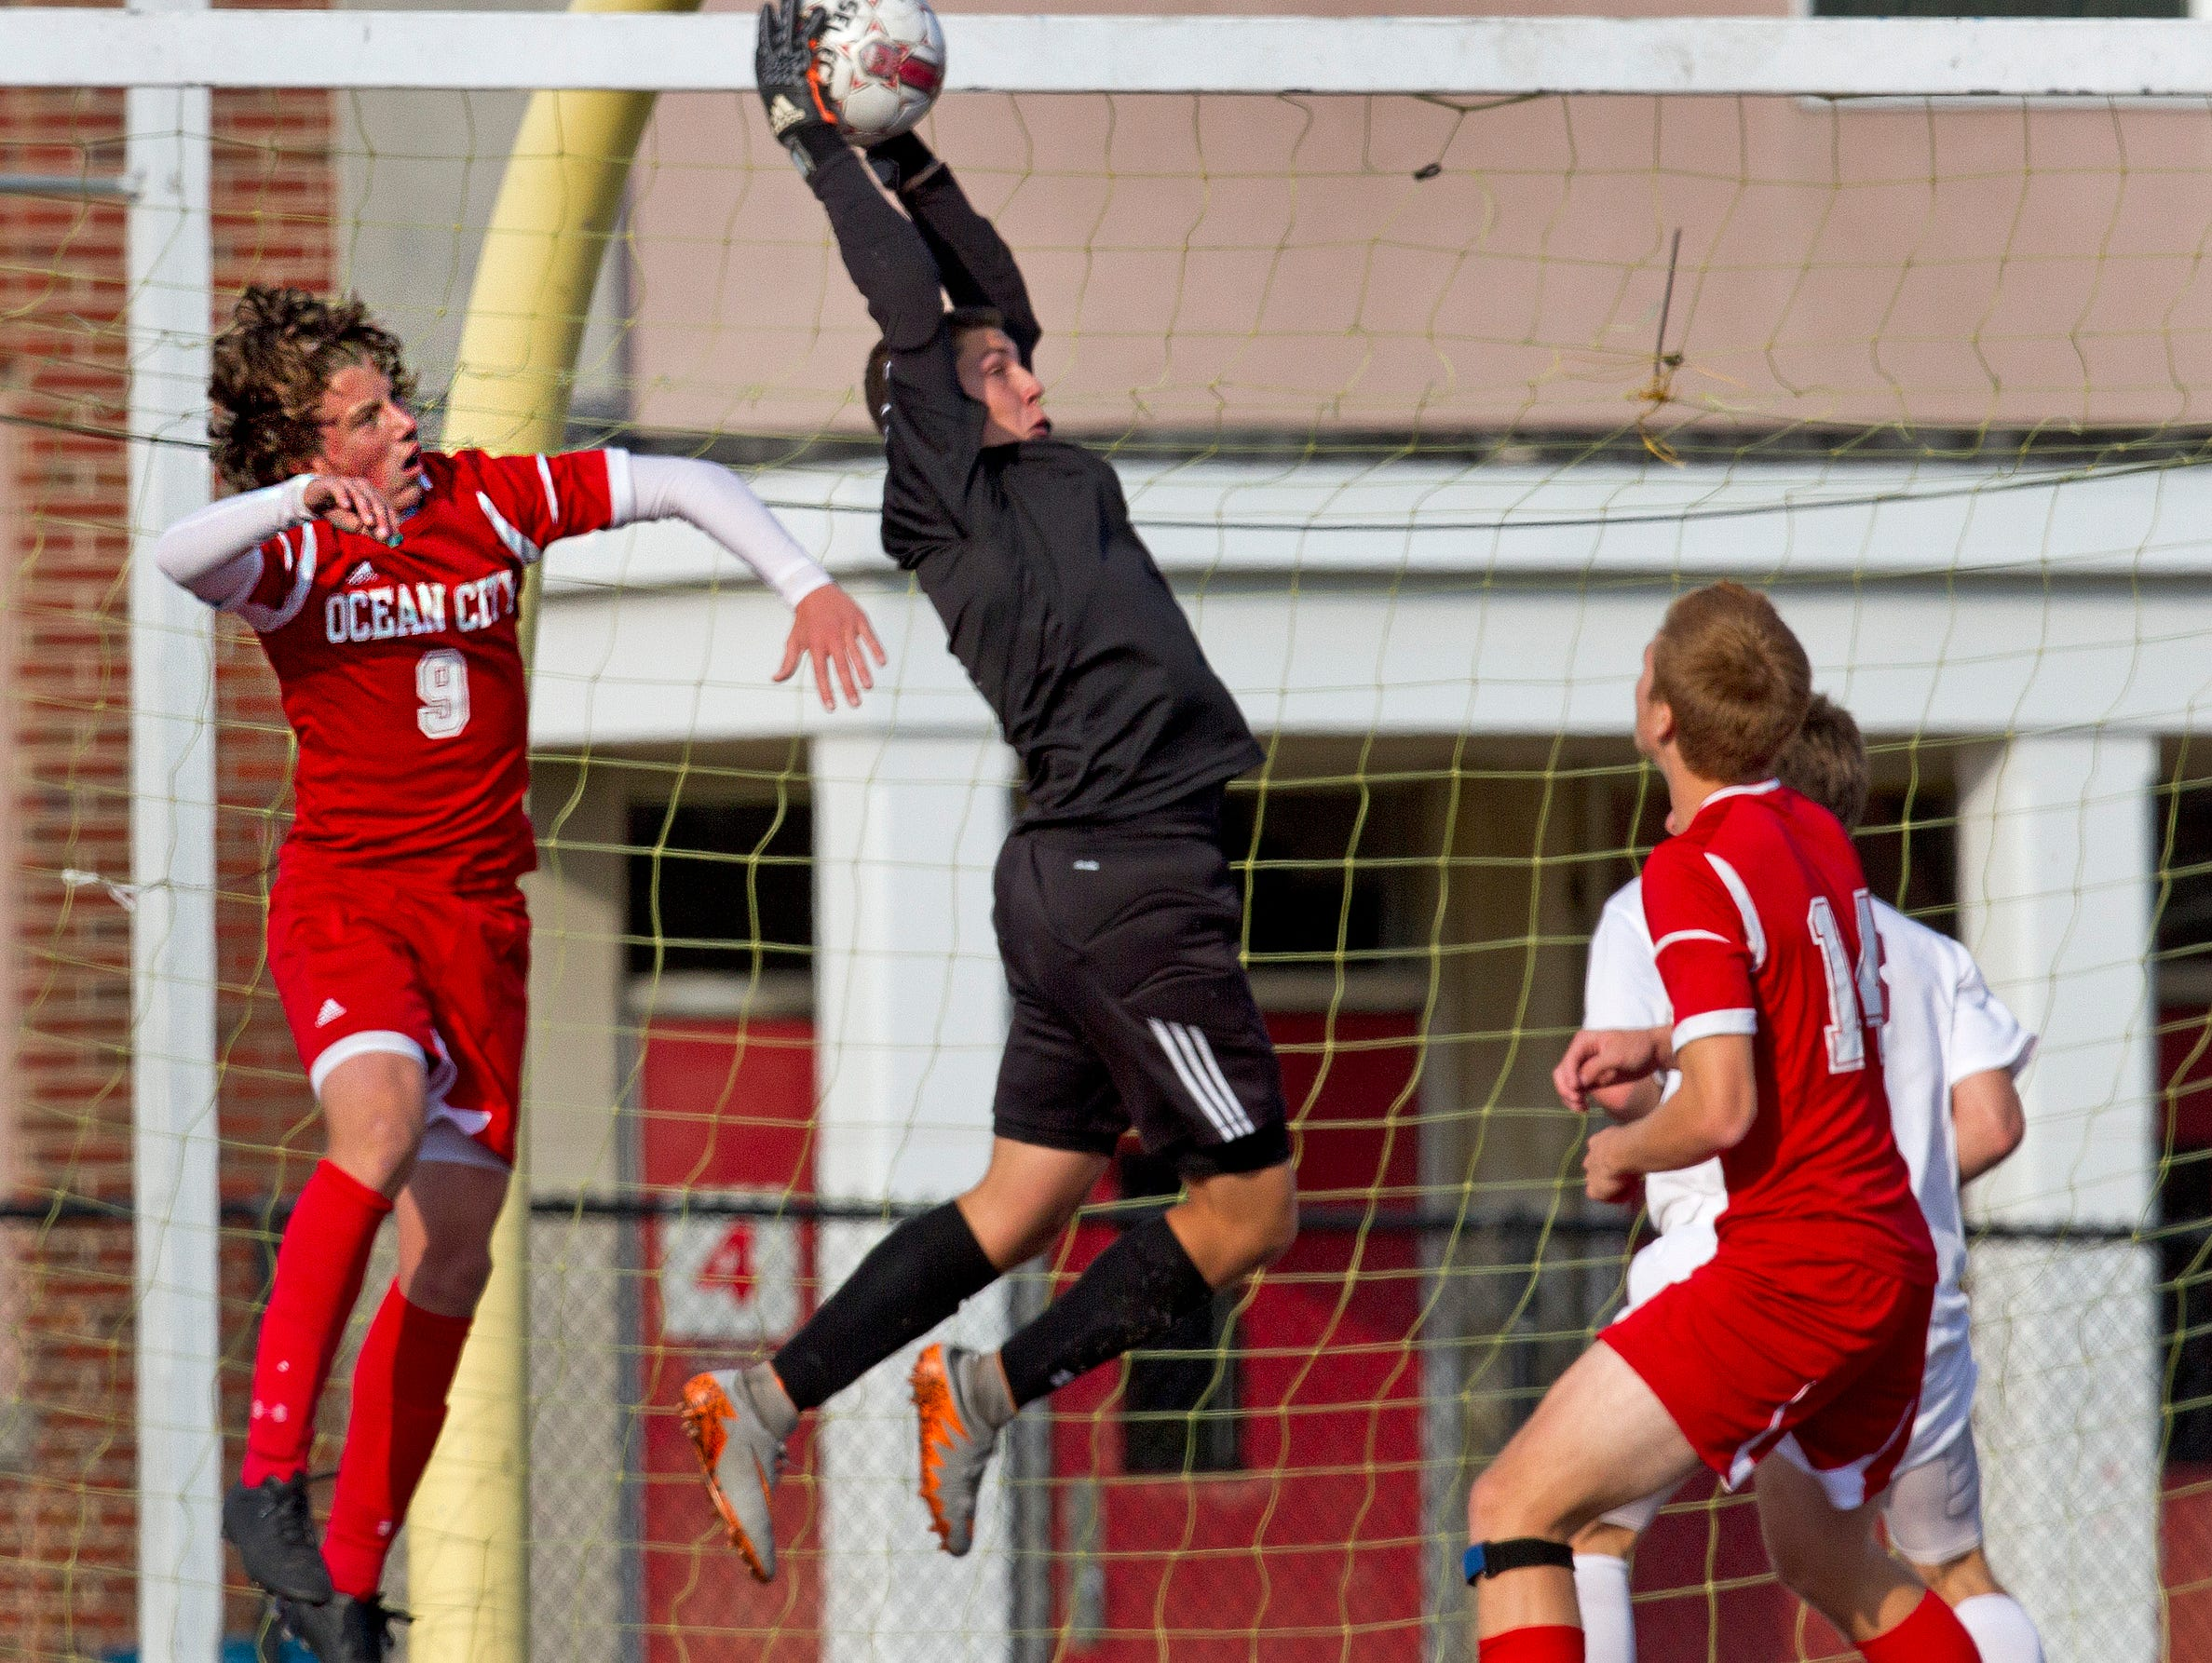 Toms River South goalie Dom Pizzi pulls down a lone shot on goal before Ocean City's Josiah Nistorenko can get his head on it. Toms River South vs Ocean City in NJSIAA Boys Group Soccer Final on November 13, 2015